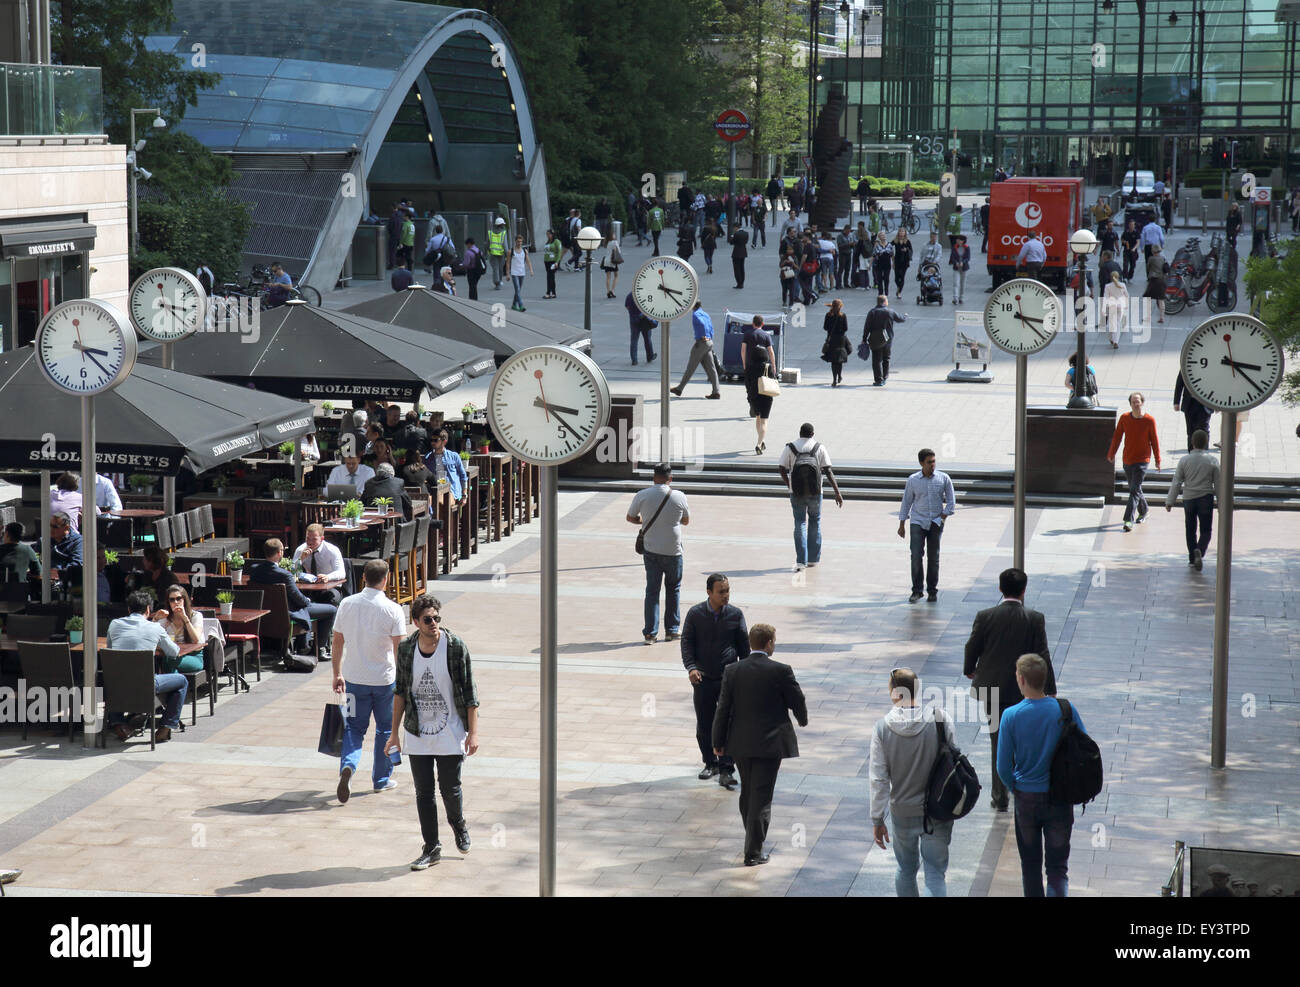 clocks outside canary wharf station in london docklands - Stock Image